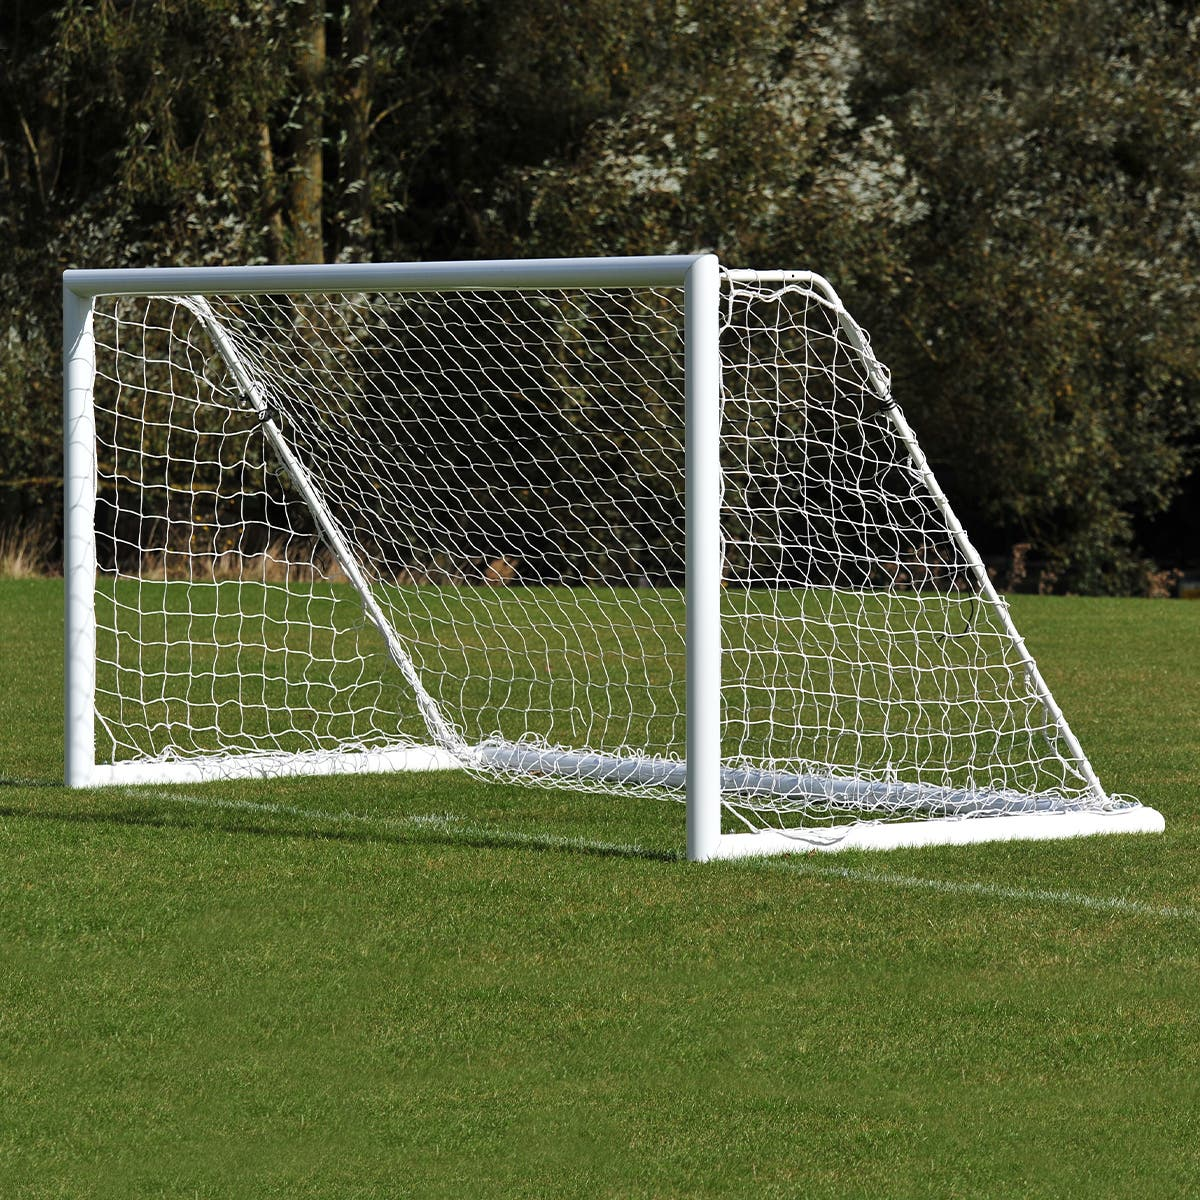 Image for Championship Aluminium Freestanding Foldaway Mini Soccer Goals Package - 12' x 6'